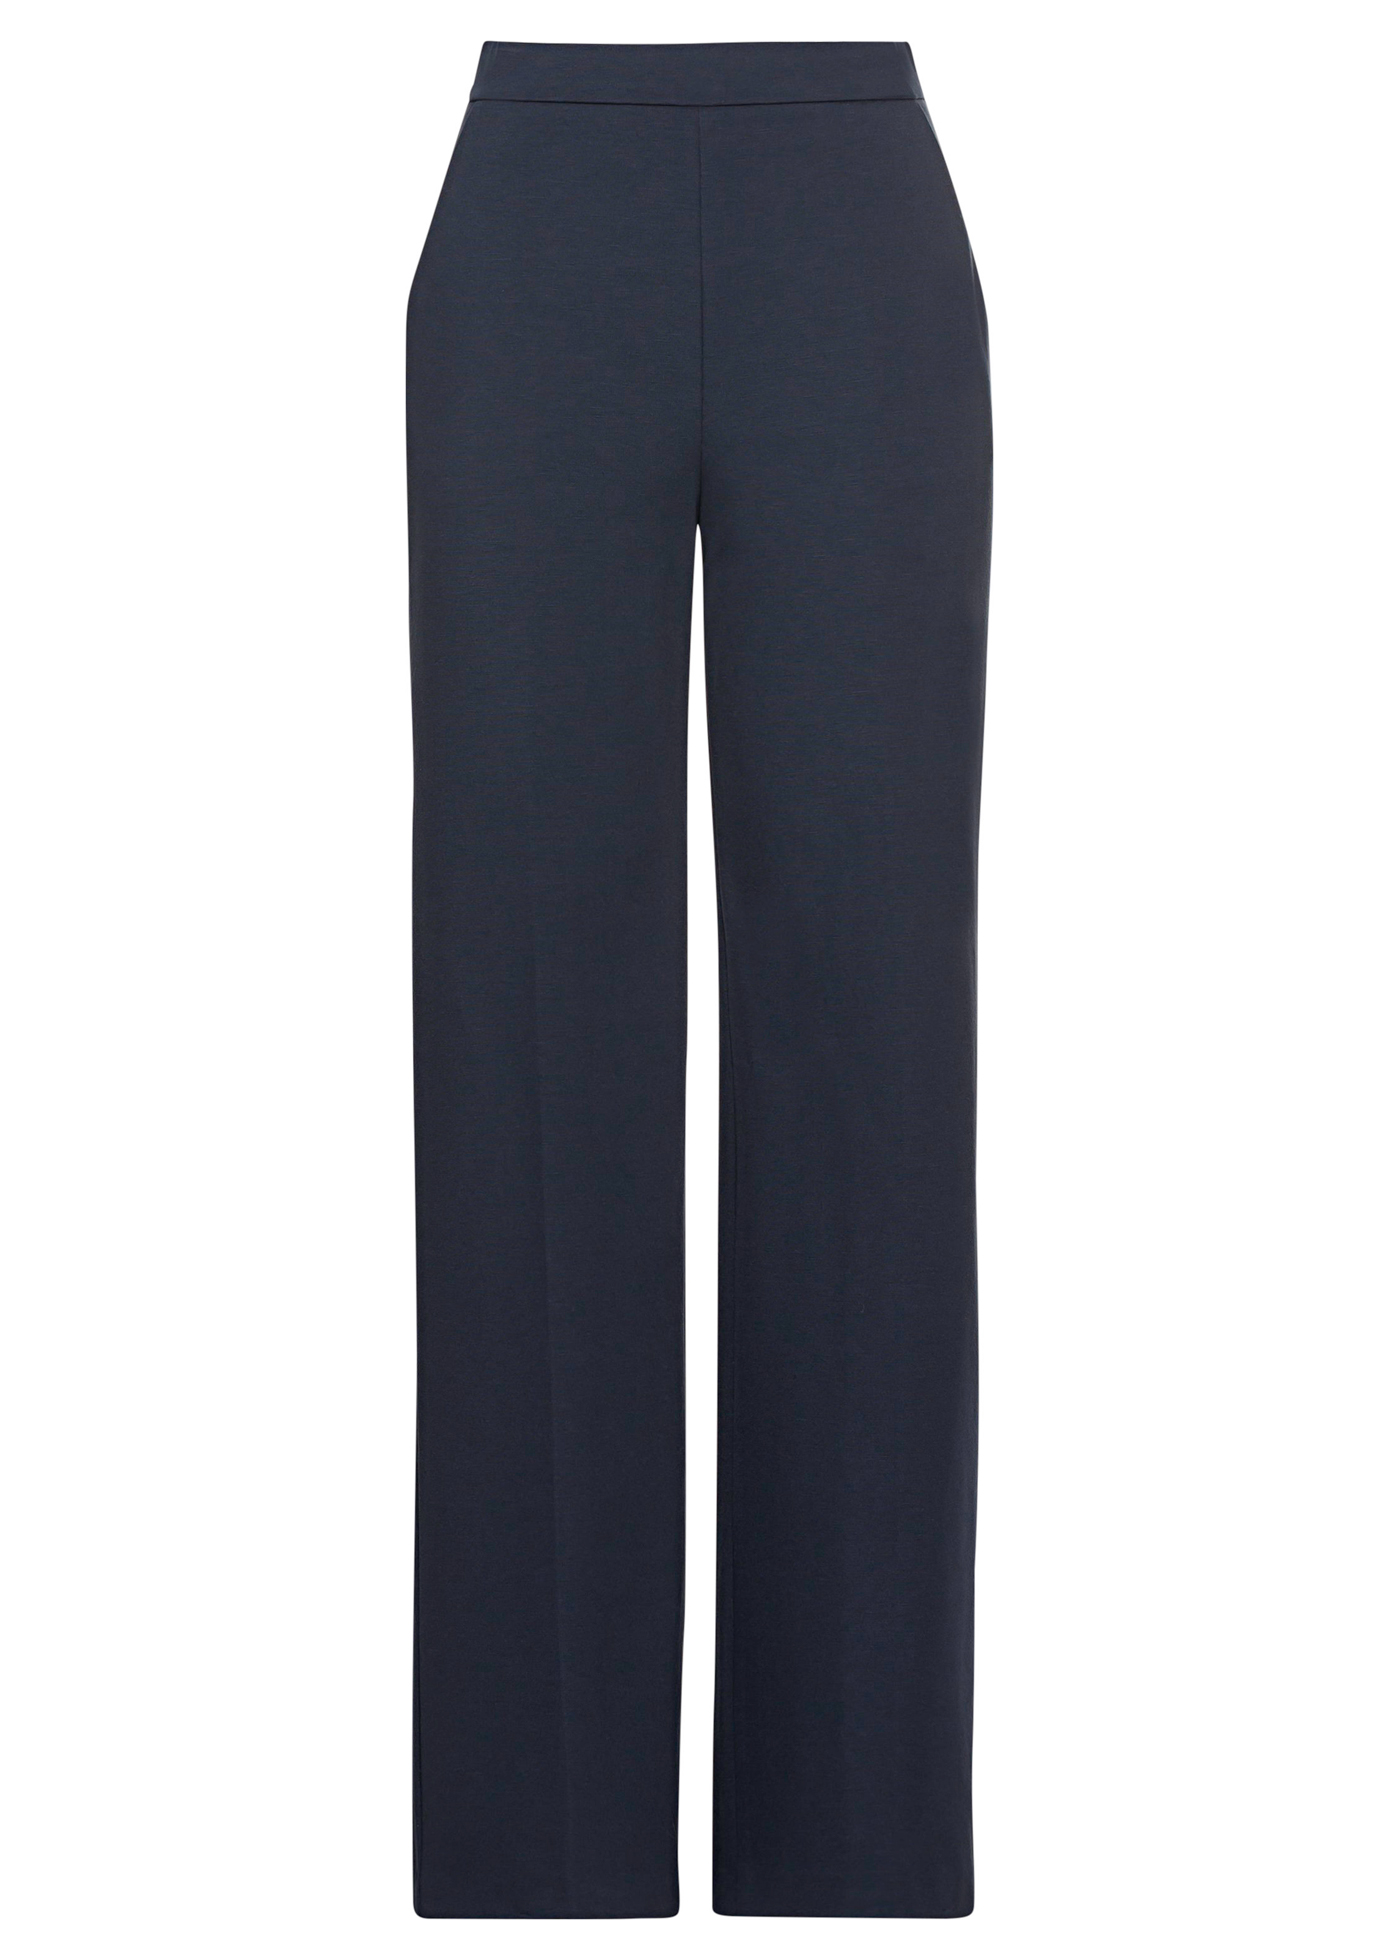 Baily Trousers image number 0